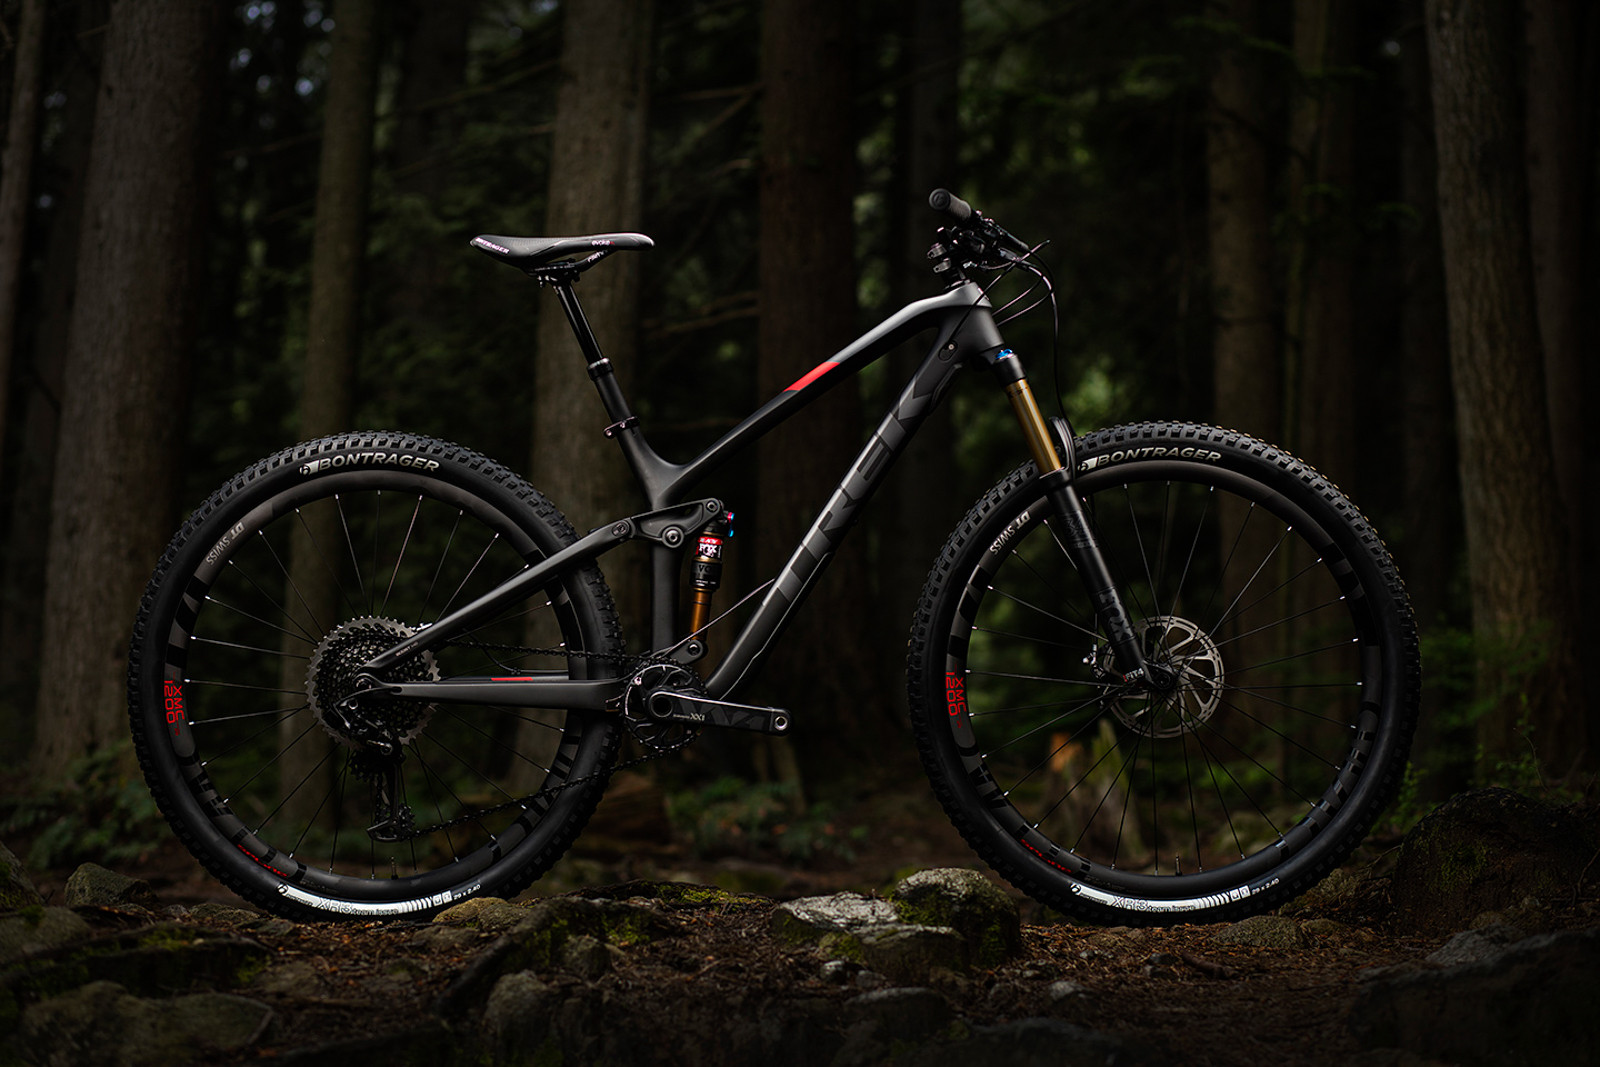 dcc65e647bd First Look: 2017 Trek Remedy 27.5 and Fuel EX 29 - Mountain Bikes ...